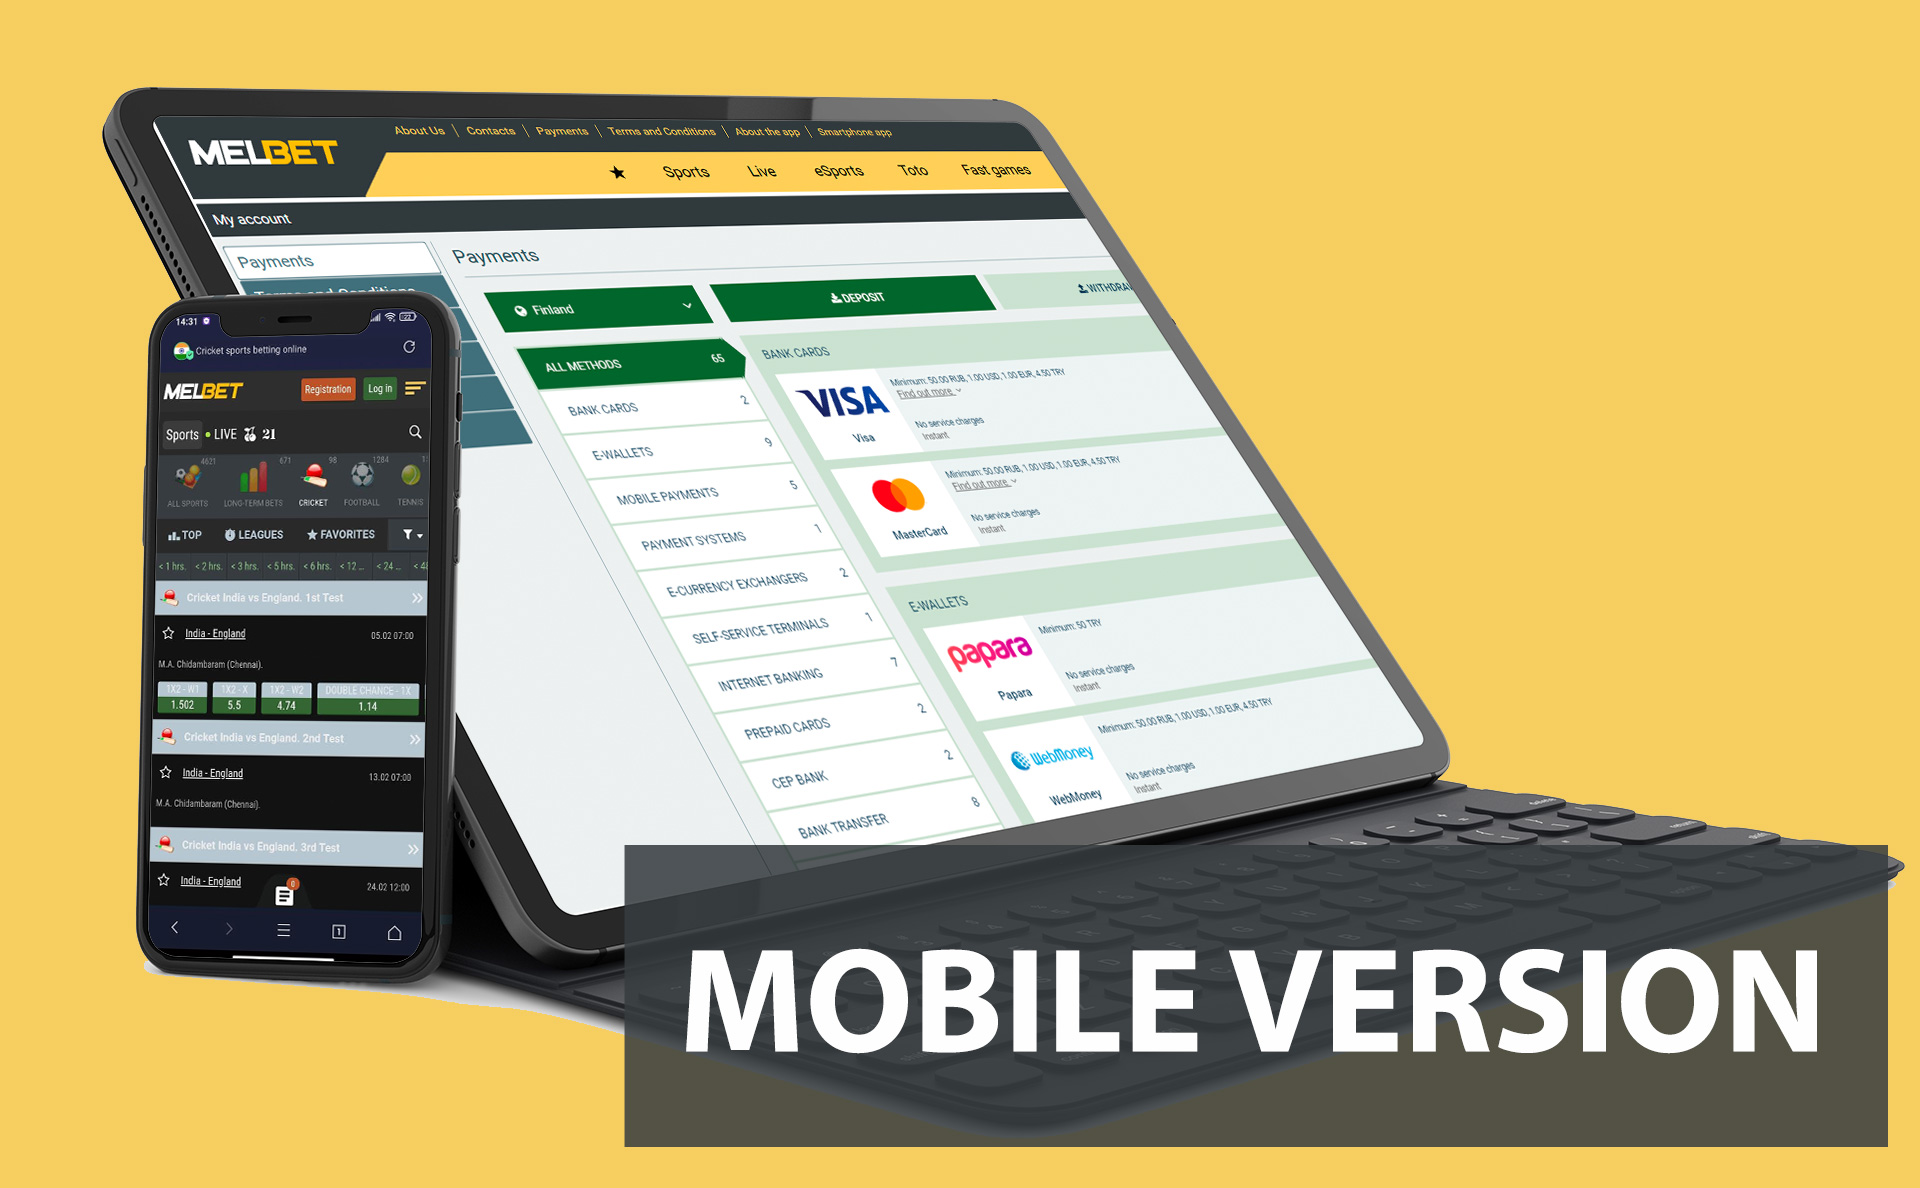 You can use a mobile verision of Melbet if you don't want to download the app.